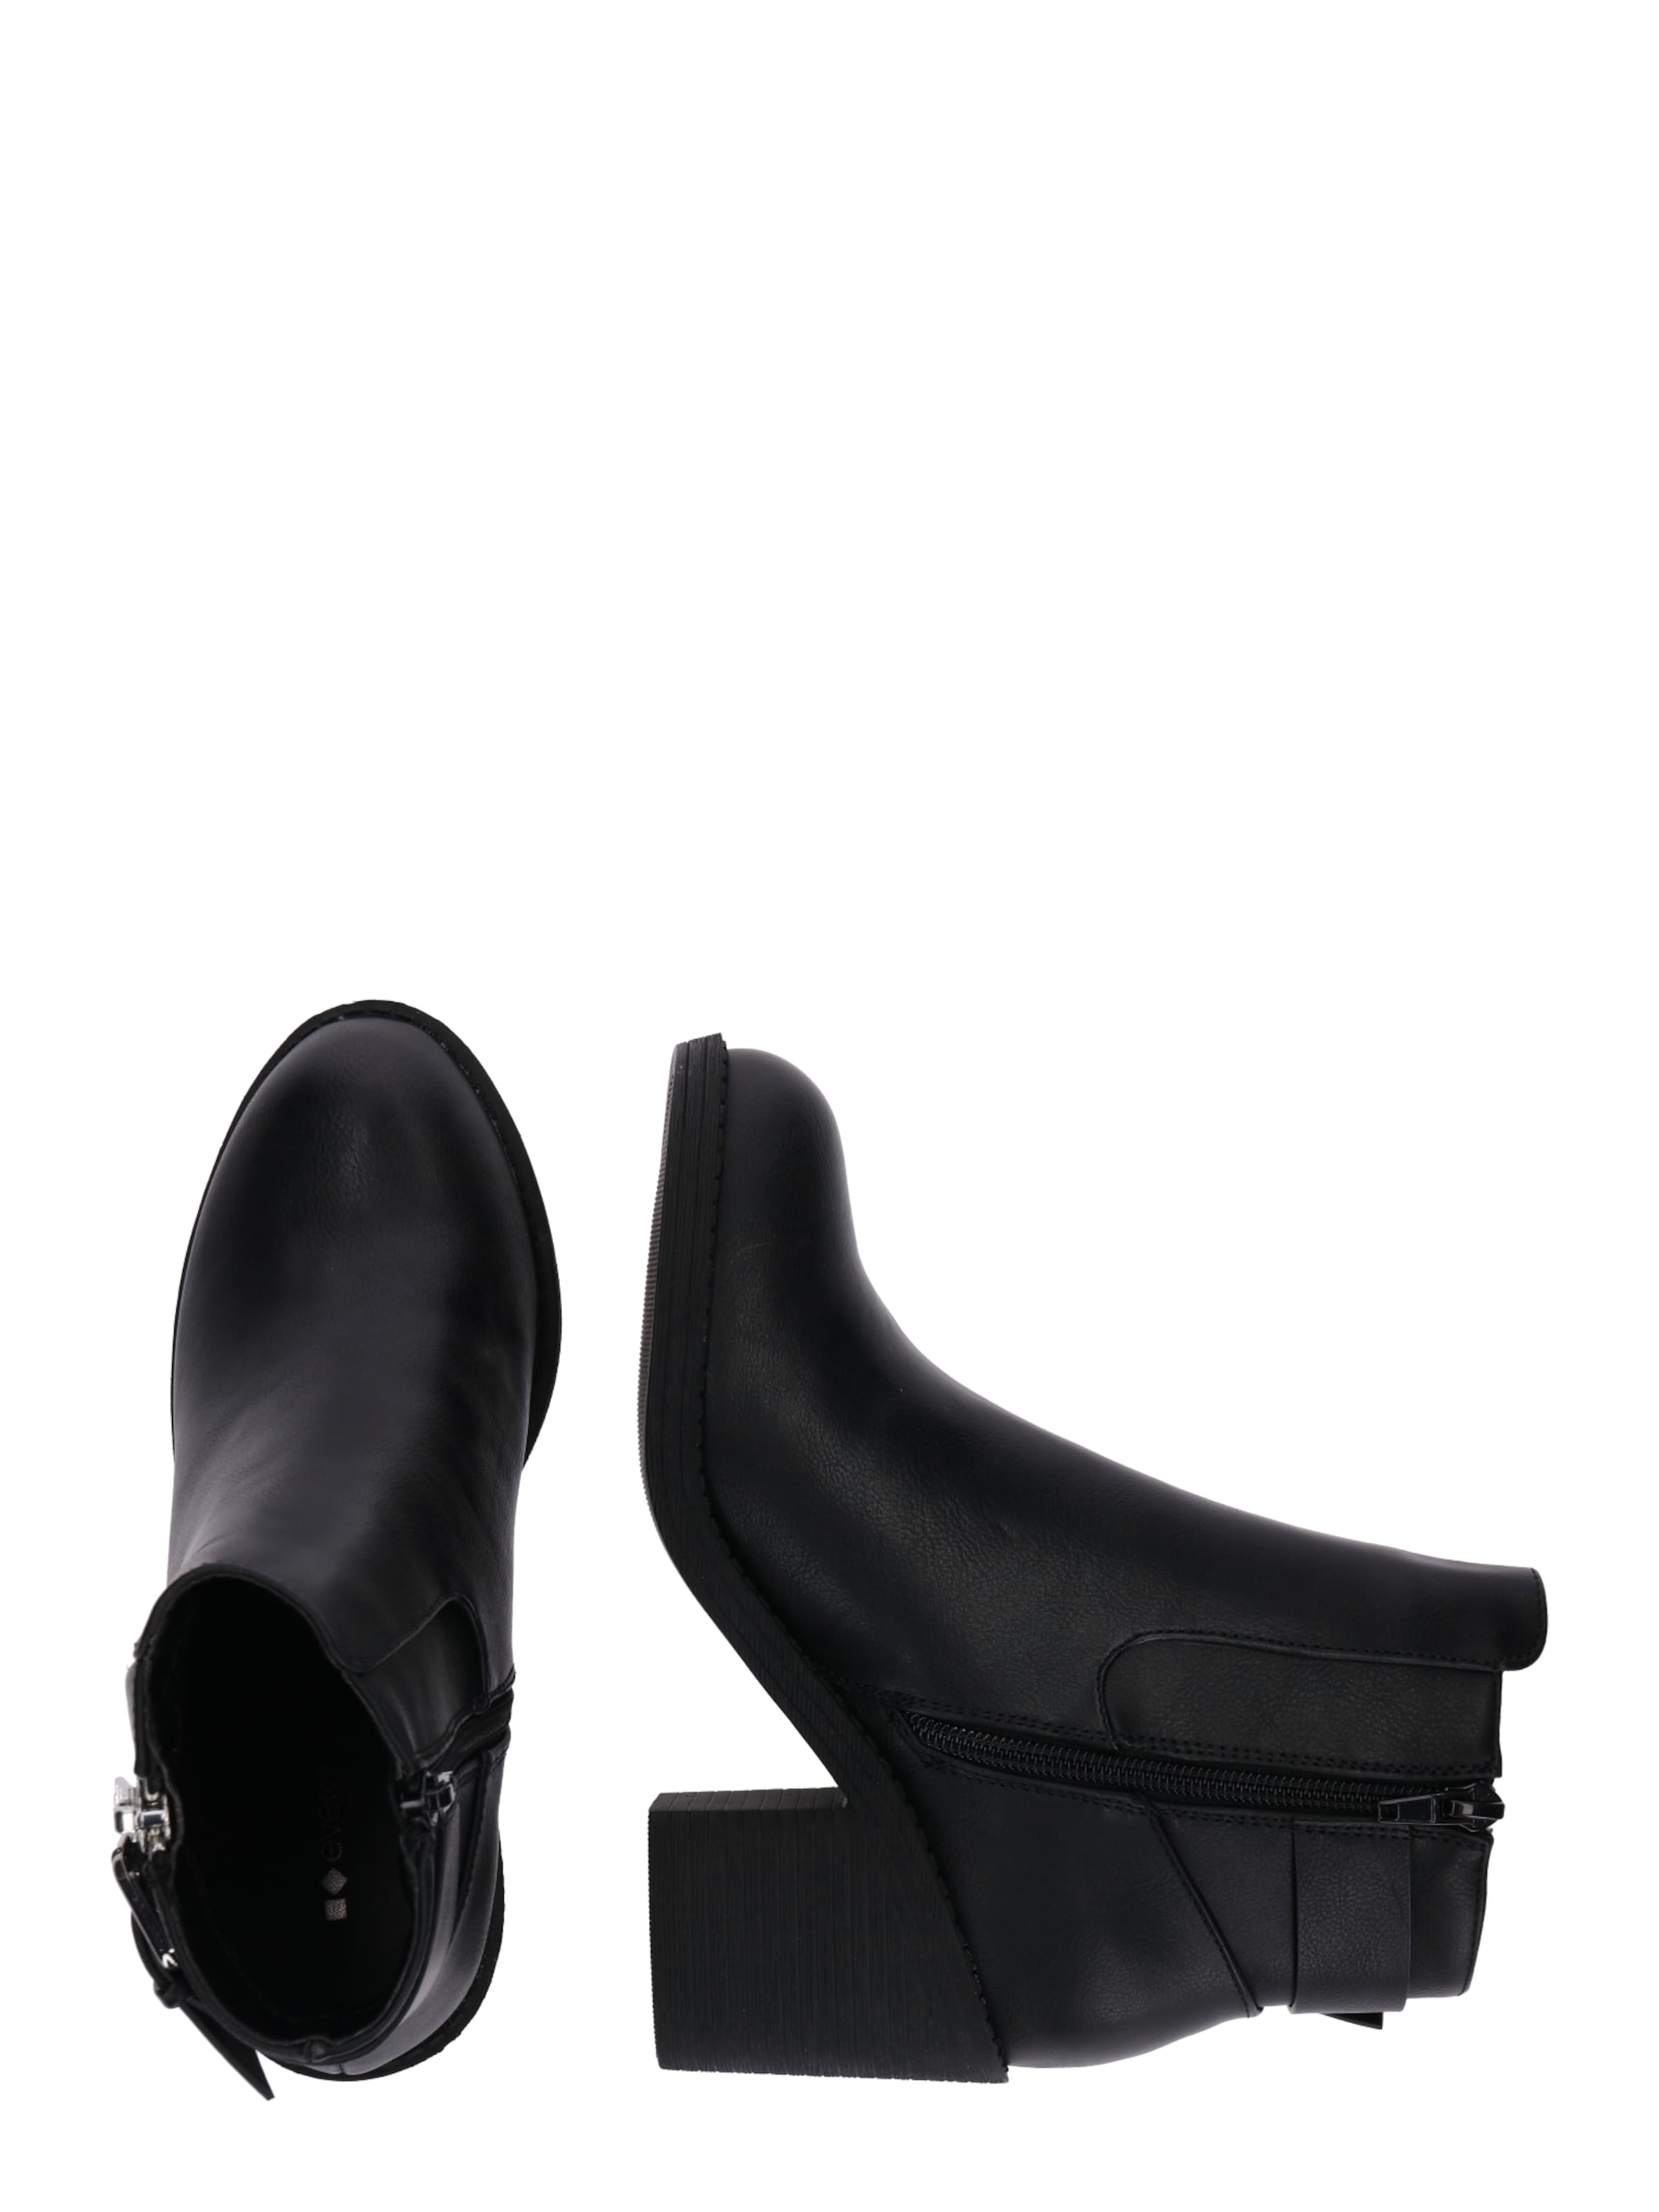 Bottines Even Even En amp;odd En amp;odd Noir Bottines En amp;odd Even Noir Bottines W9IE2DH